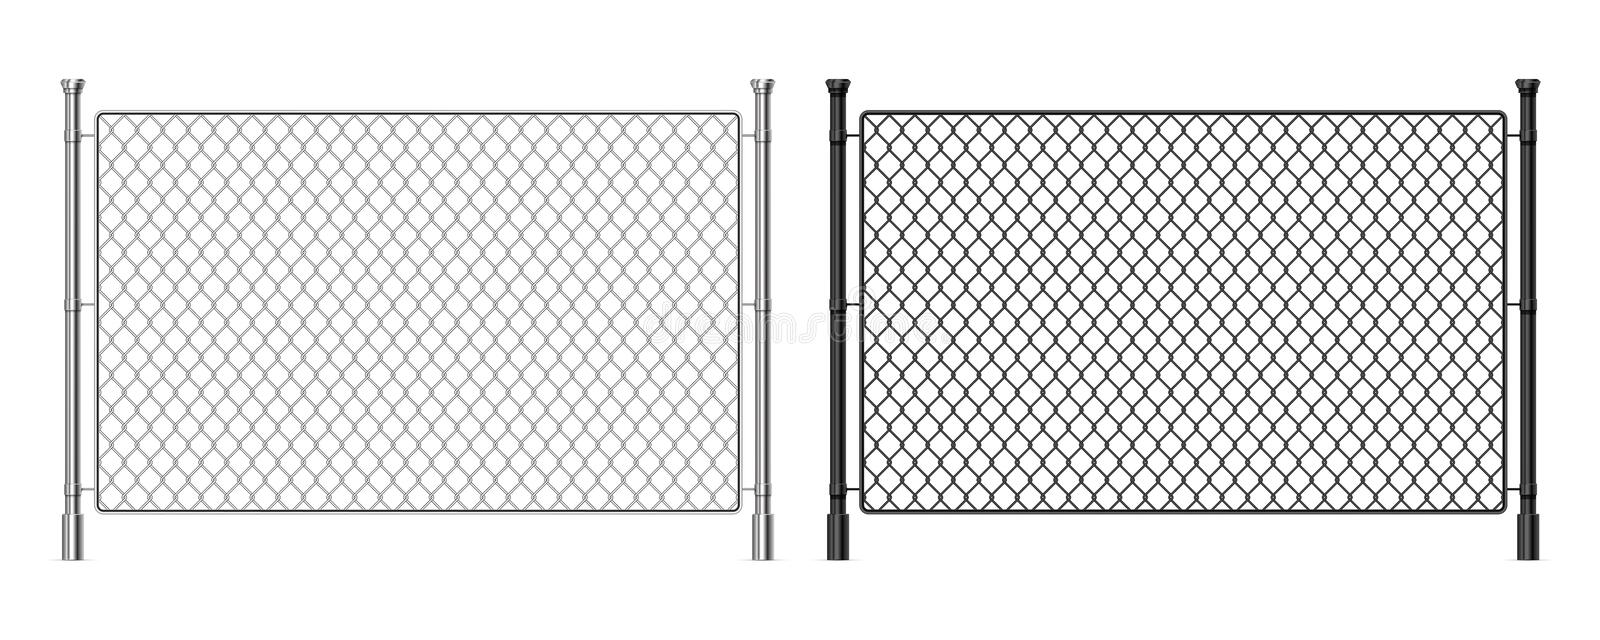 Metal wire fence. Realistic steel dark and light fence, industrial metal wire mesh, prison security urban railing royalty free illustration